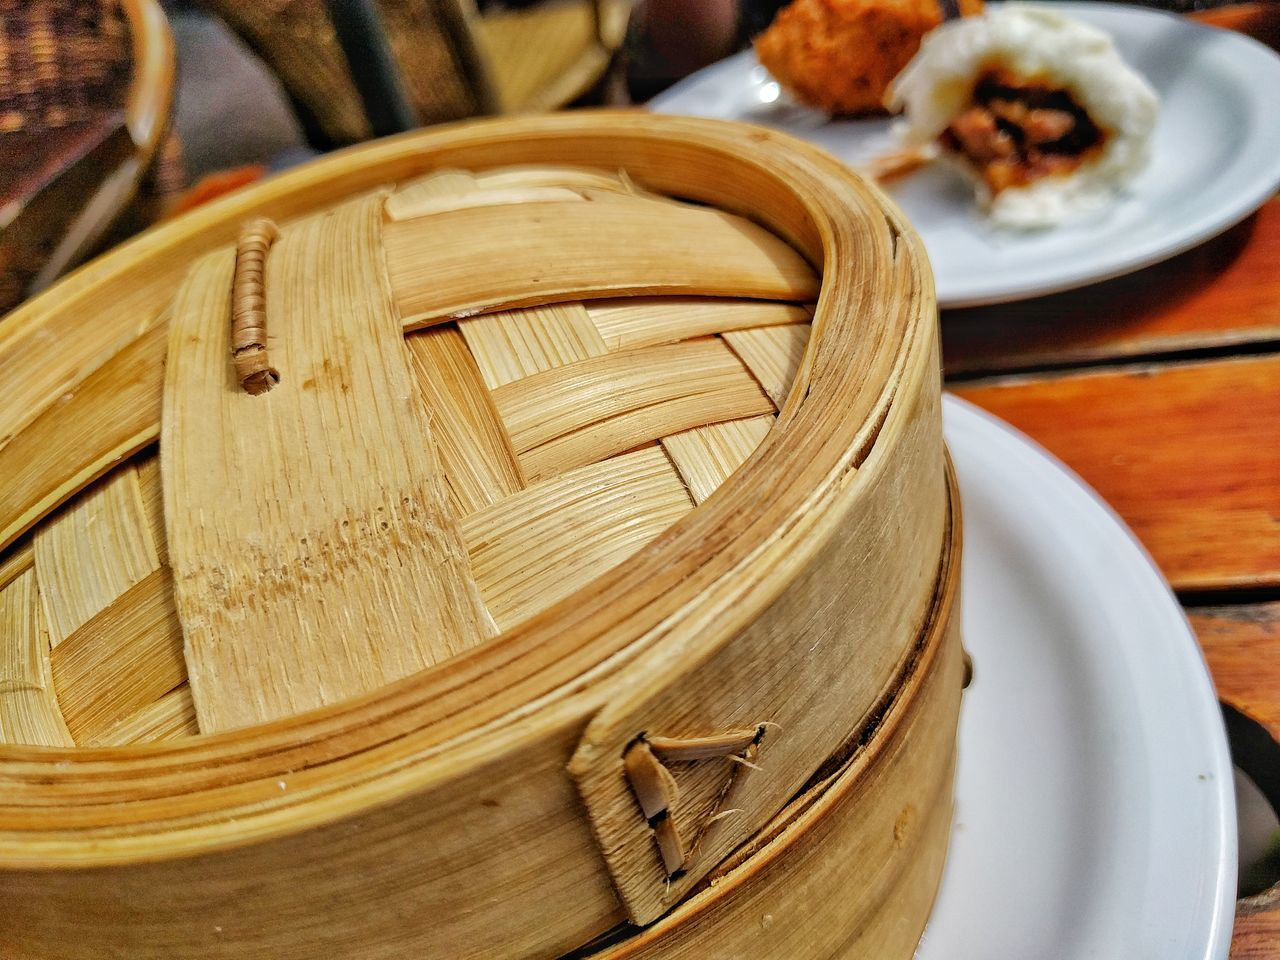 Bamboo Basket Steamer Bamboo Basket Bamboo Fresh On Eyeem  Basket Steam Basket Chinese Cooking Chinese Food Chinese Kitchen Asian Culture